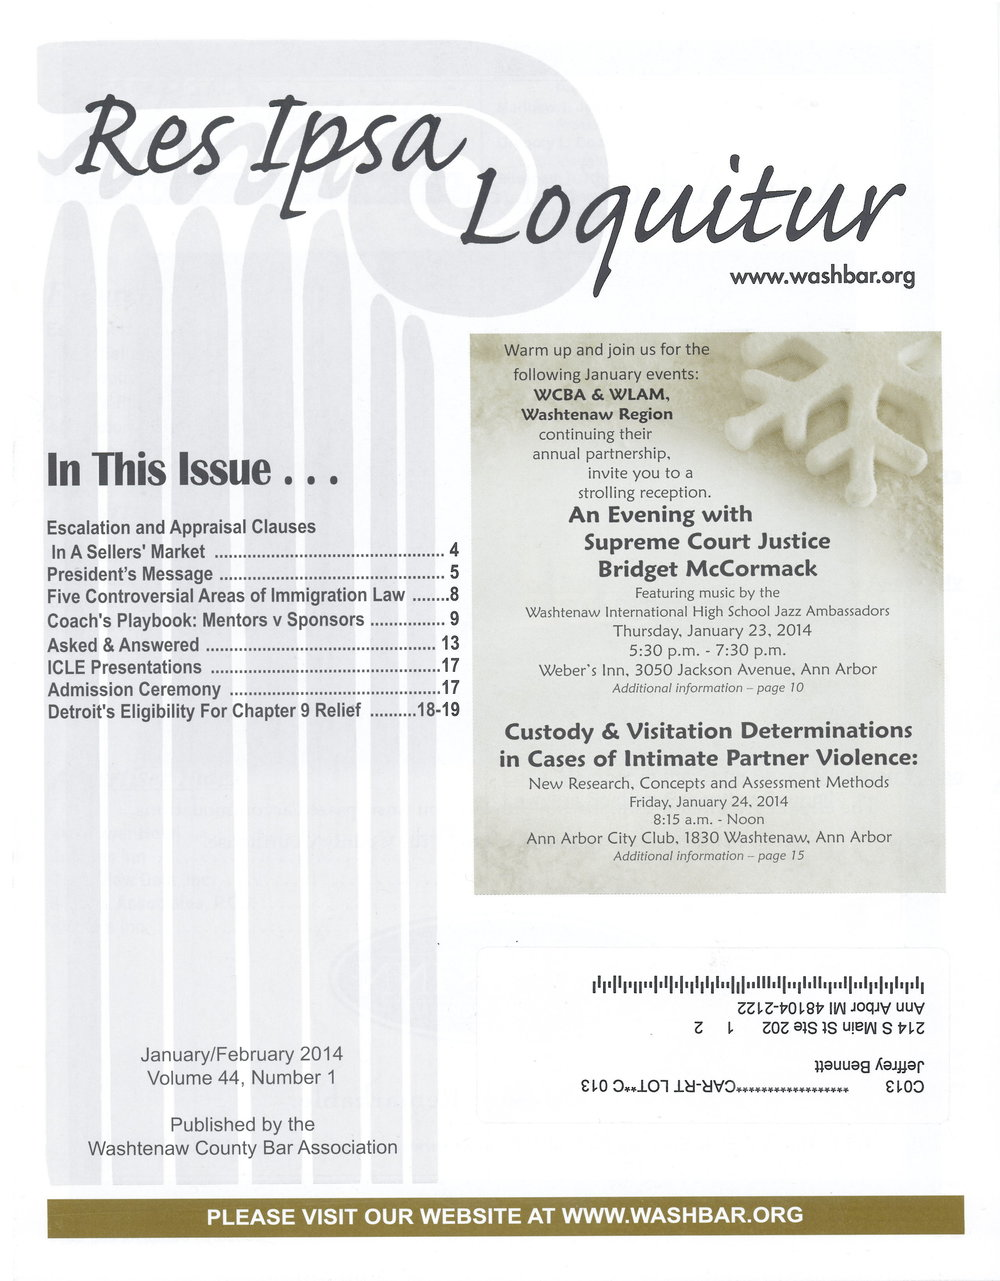 Article by Jeffrey Bennett discussing Detroit City's Bankruptcy Case that was featured in the Washtenaw County Bar Association Publication,Res Ipsa Loquitur.